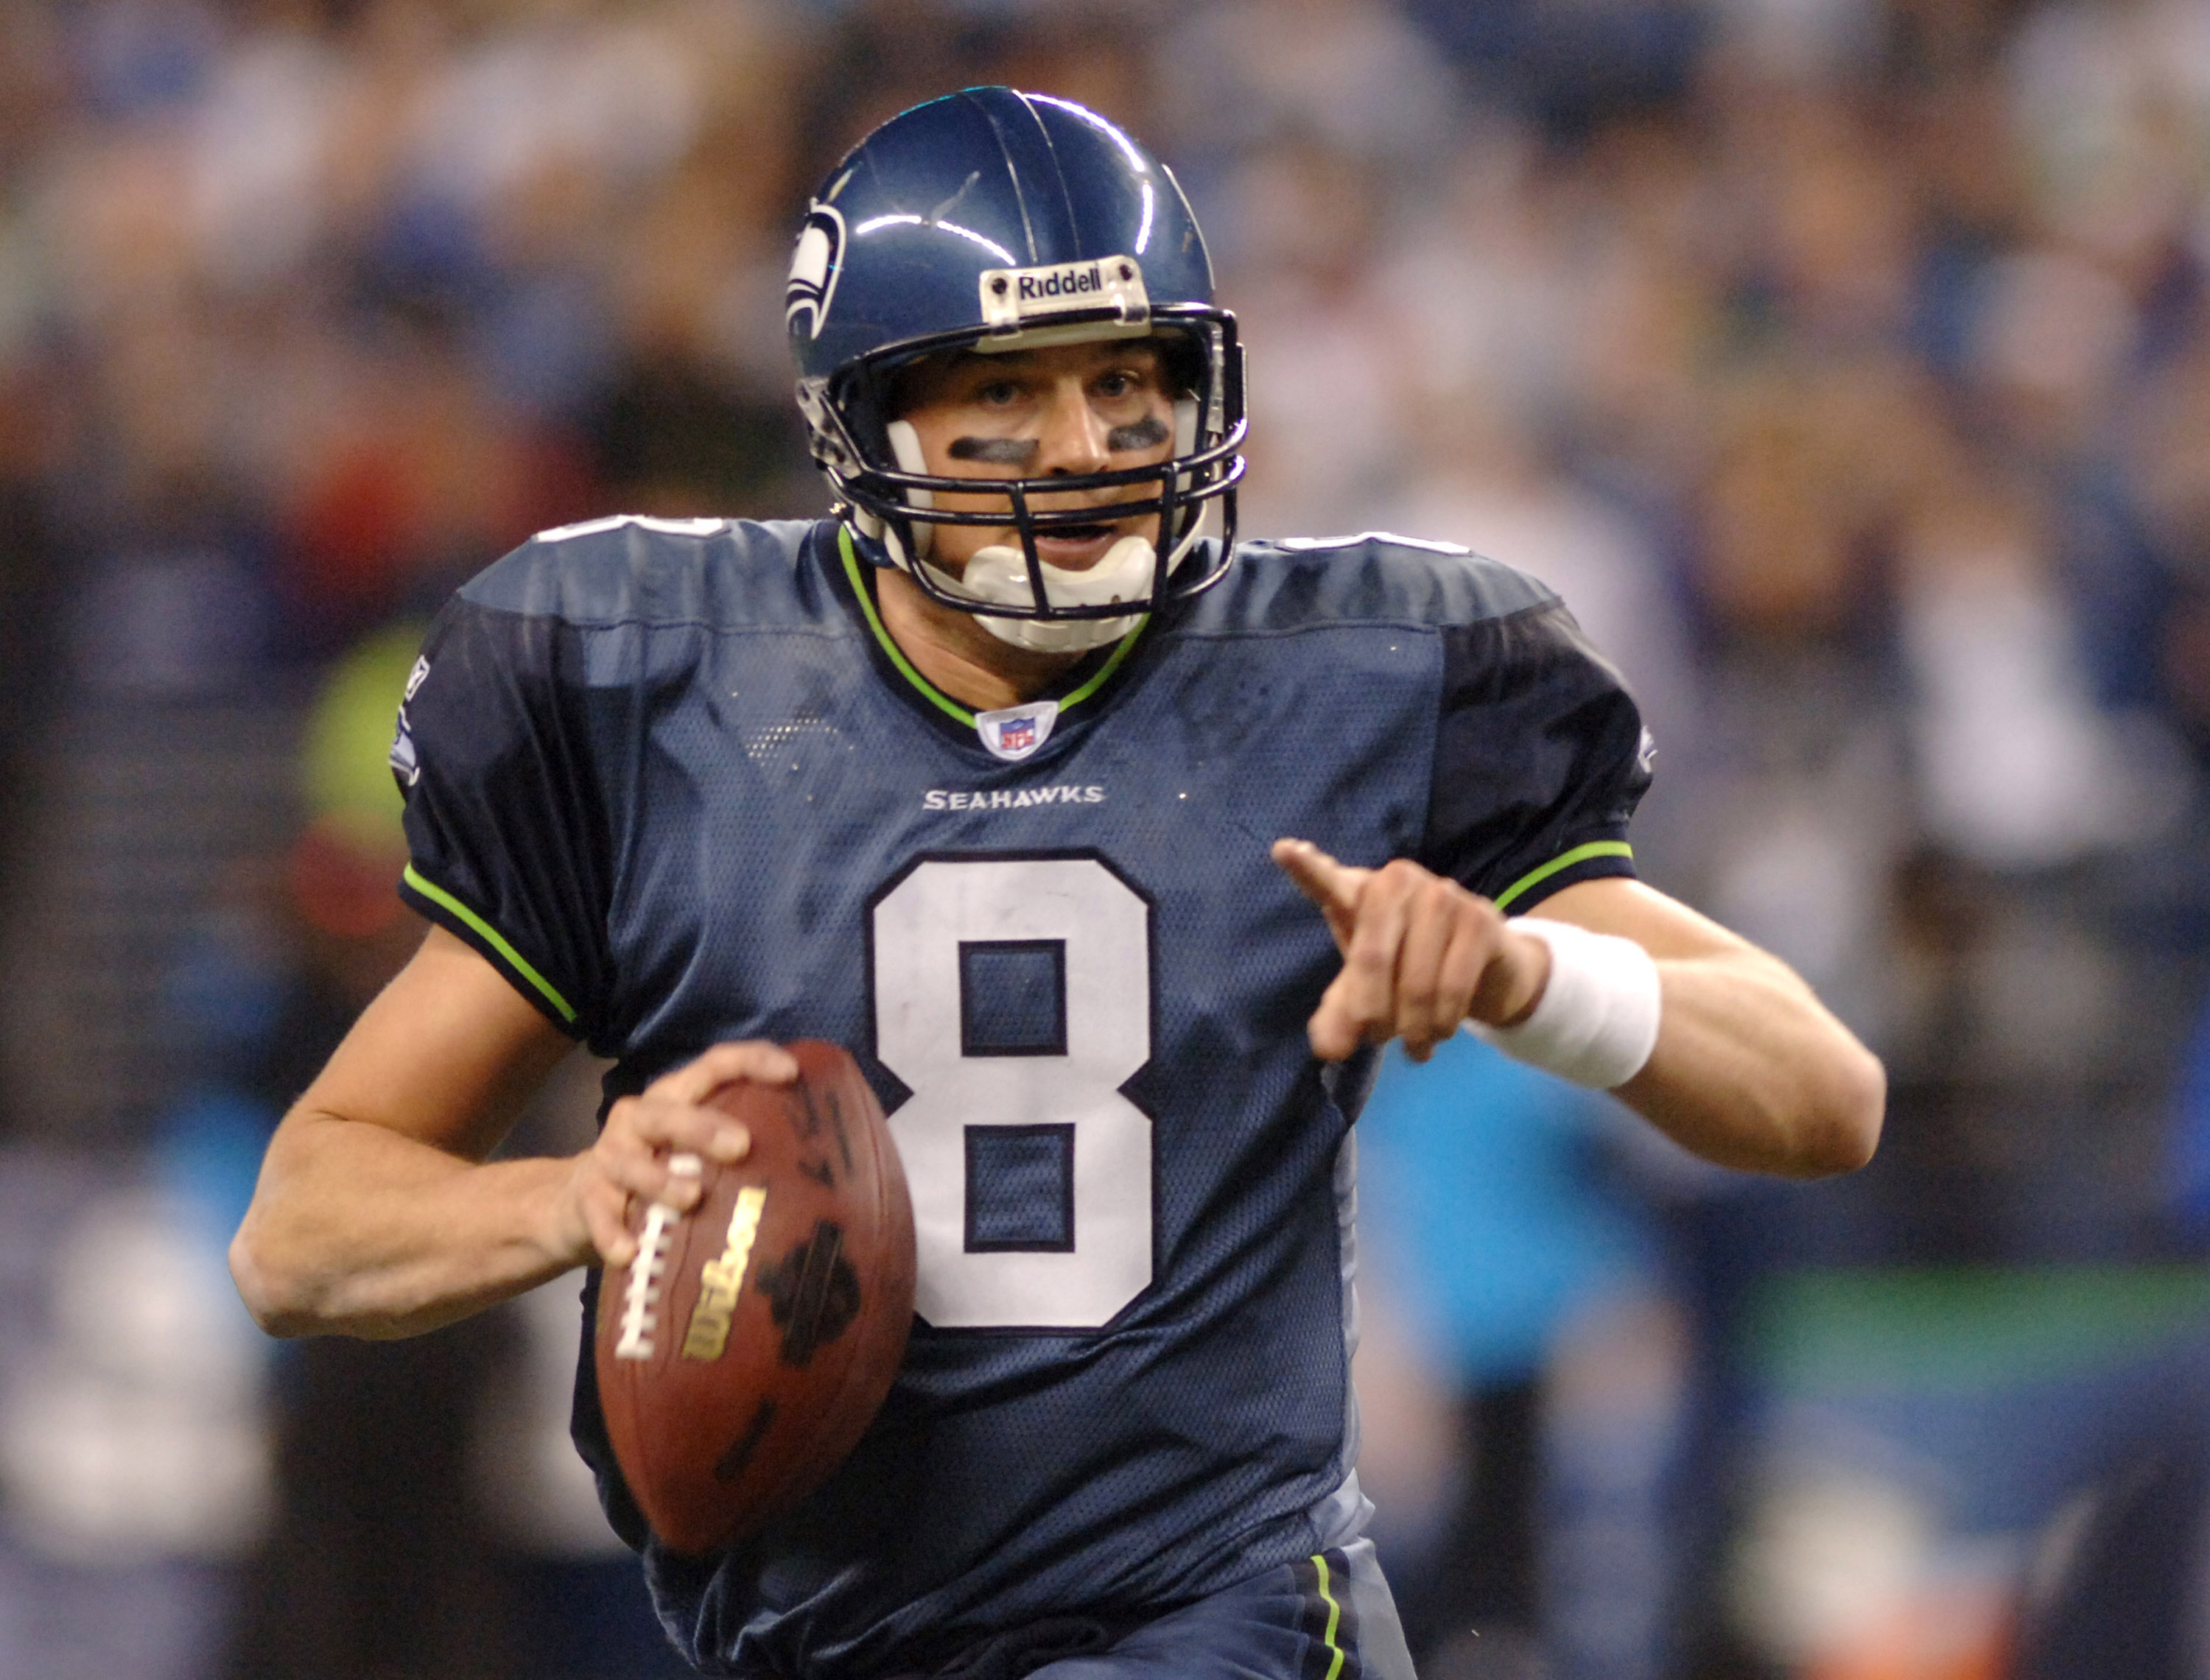 Matt Hasselbeck, 2006 NFC Championship Game. Is this officially an image of the past?